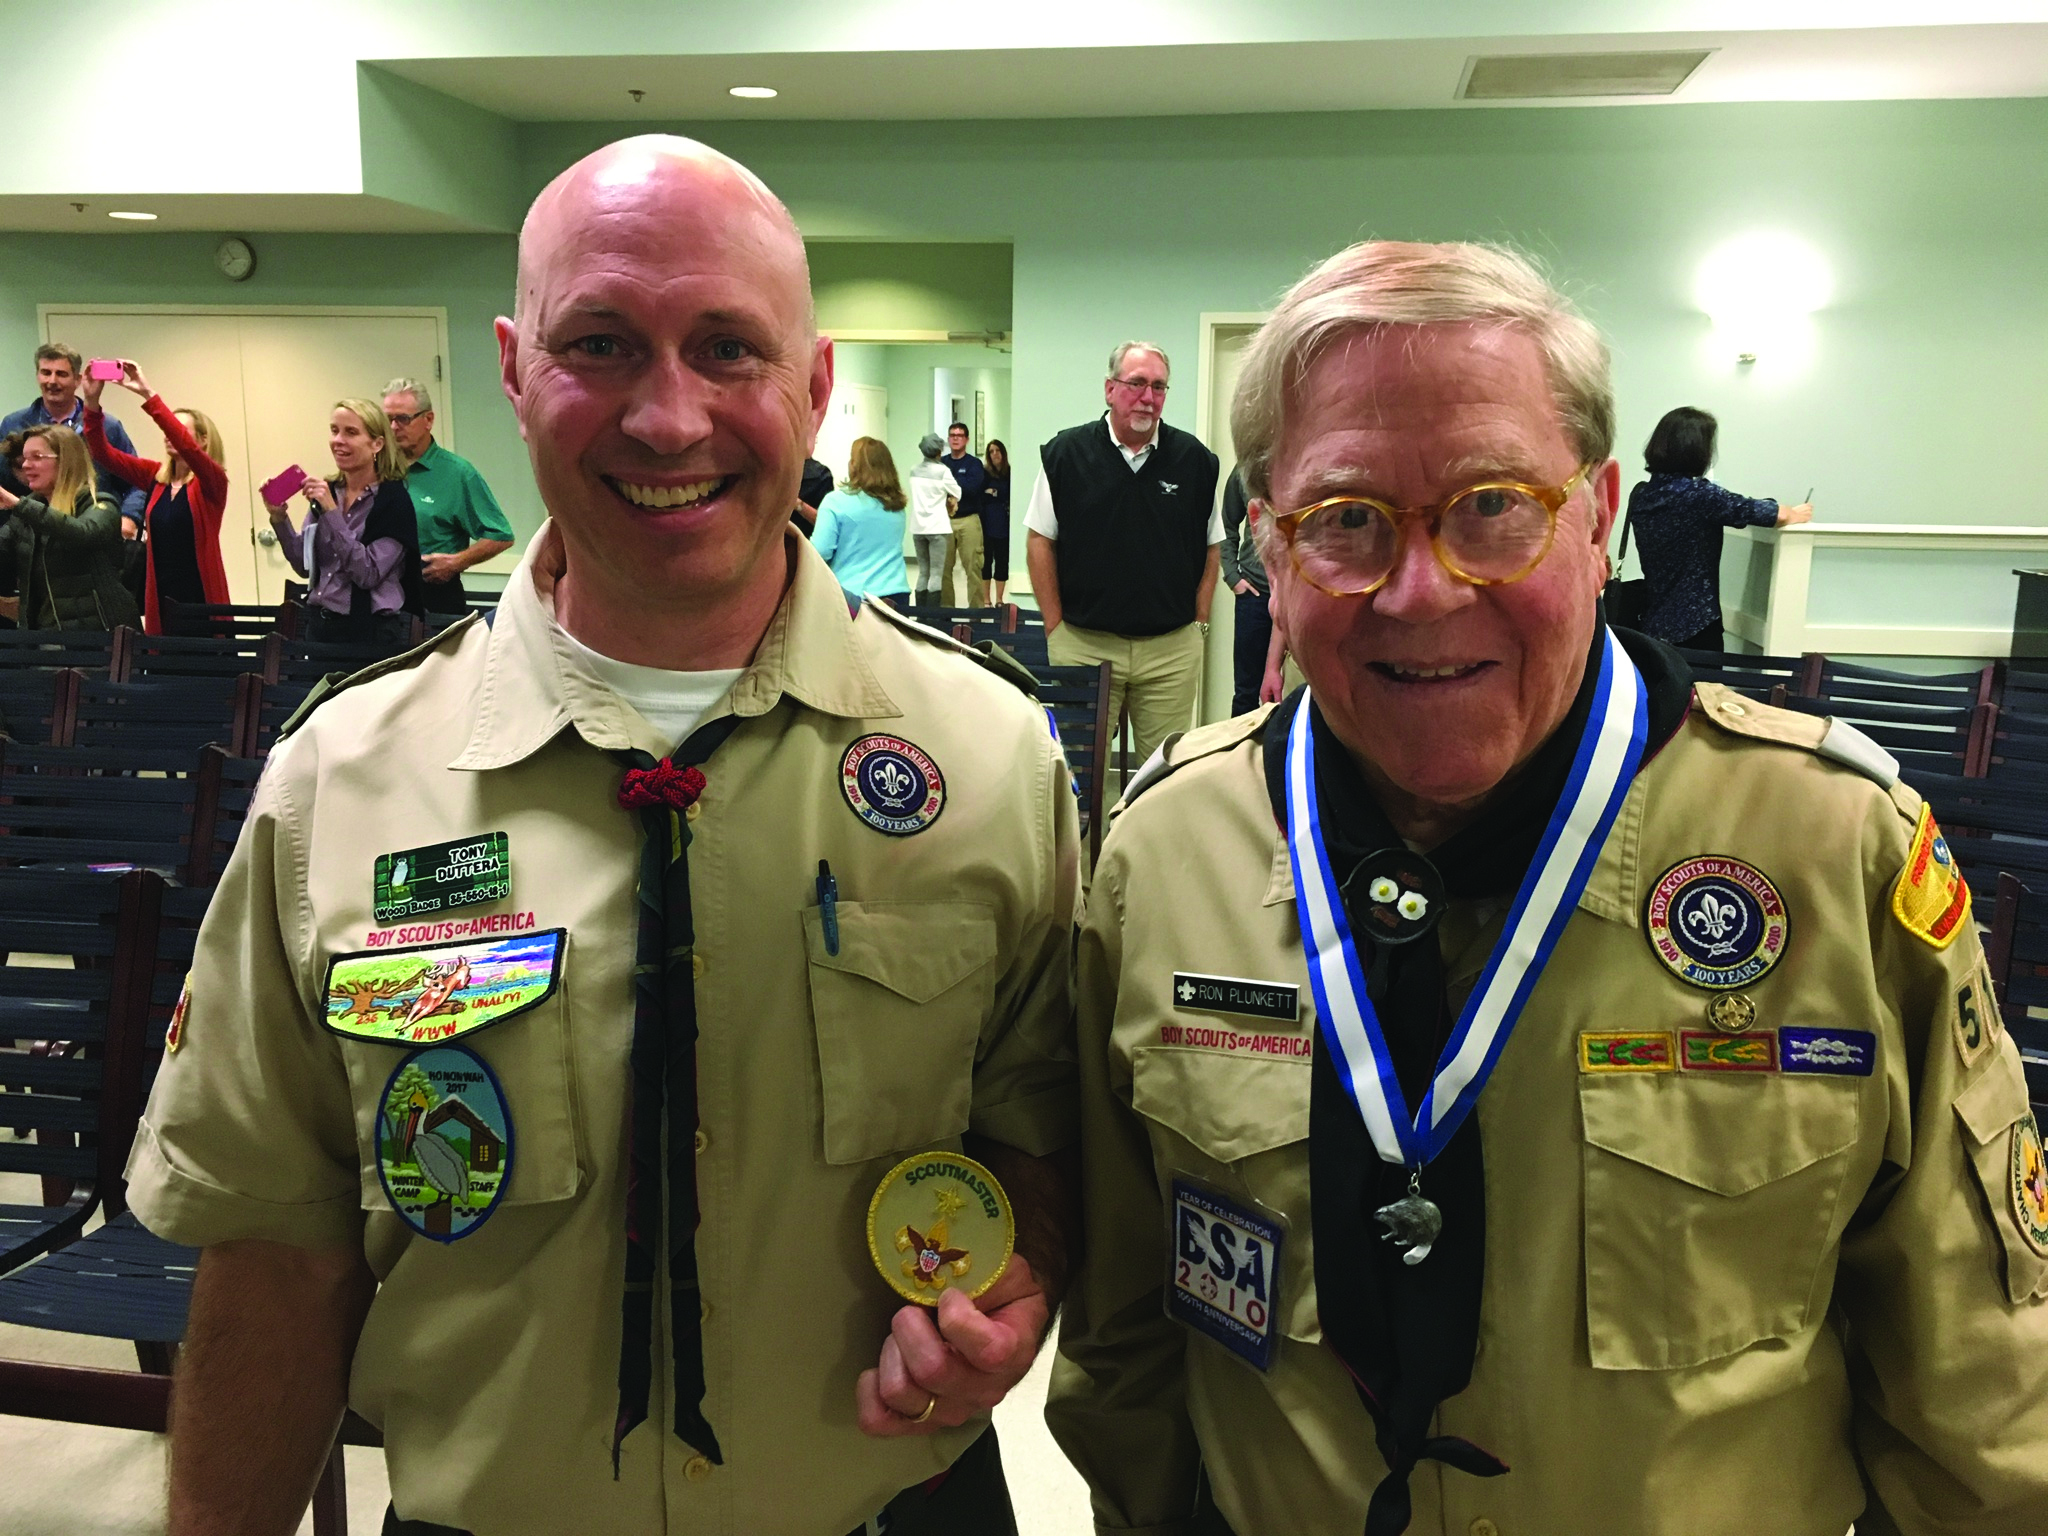 Two leaders in Boy Scout Troop 519 received special honors recently. Scoutmaster Tony Duttera (left) received the Unit Leader of Merit Award, which recognizes quality leadership as well as the promotion of a positive image of scouting in the community. Ron Plunkett (right), a Troop 519 chartered organization representative and committee member, received the Silver Beaver Award, an honor bestowed on those who demonstrate exceptional character and those who have provided distinguished service within a council.